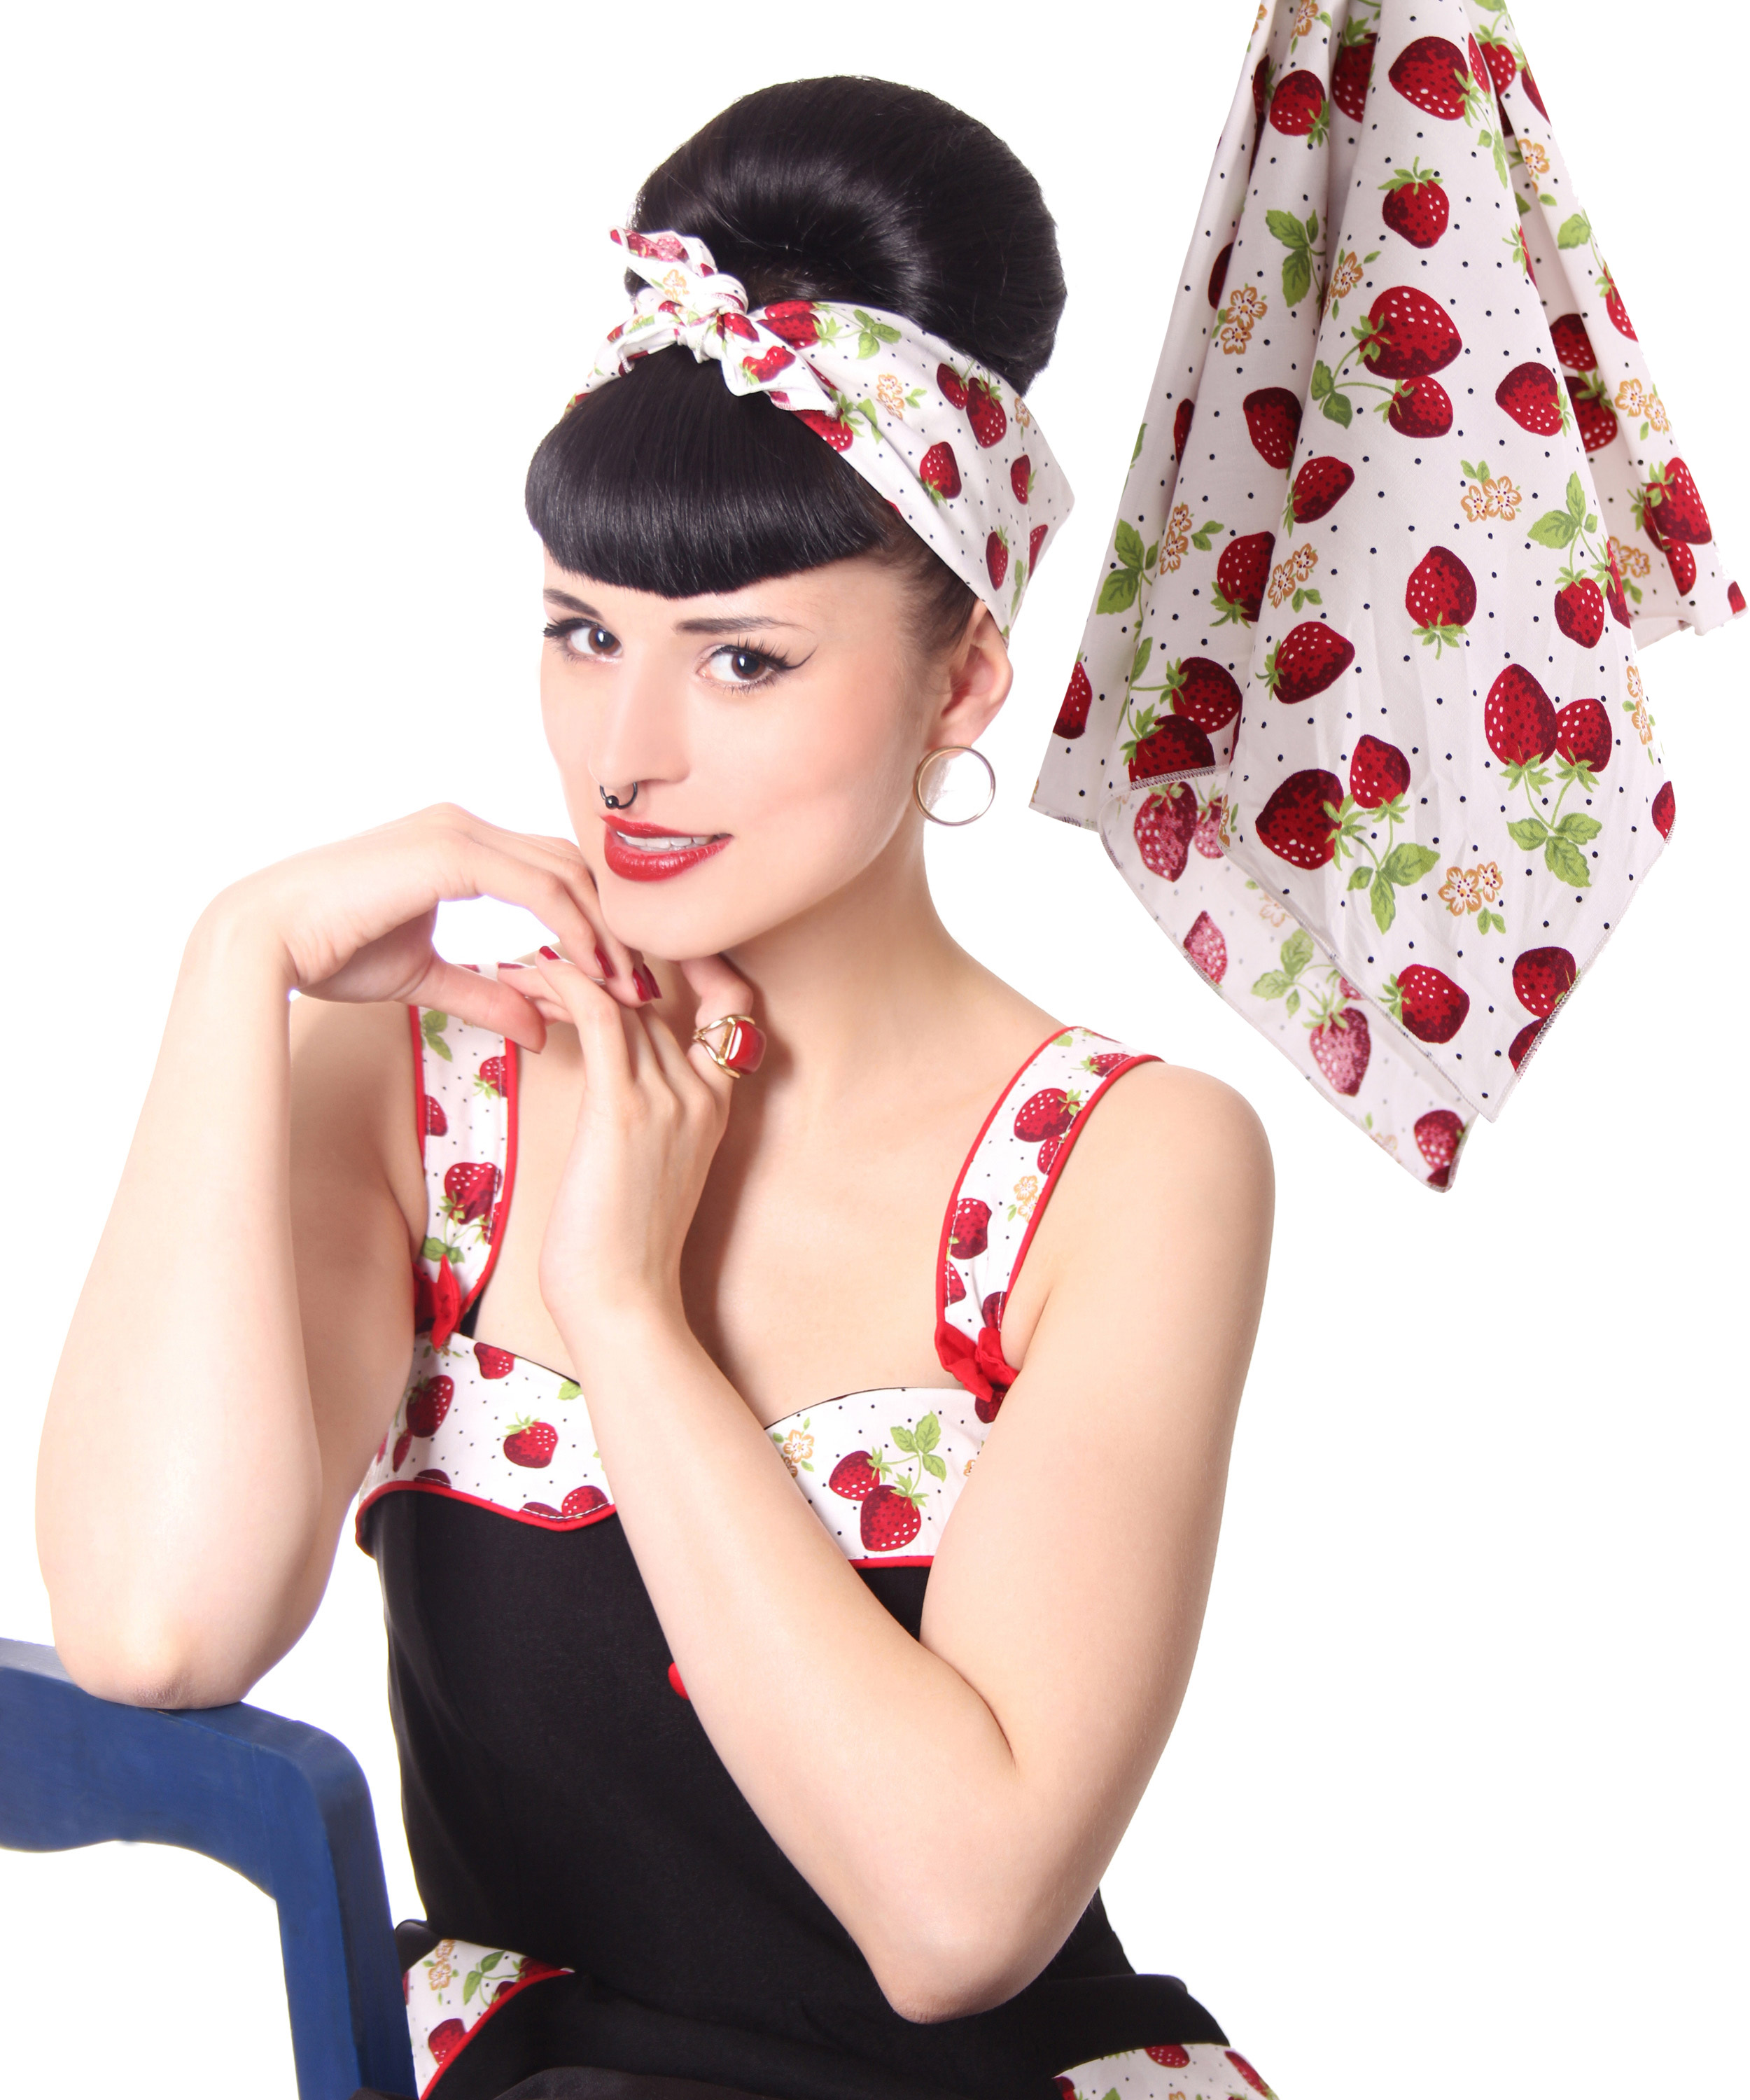 50s frisuren strawberry retro nickituch hairband haar tuch bandana v sugarshock accessoires. Black Bedroom Furniture Sets. Home Design Ideas